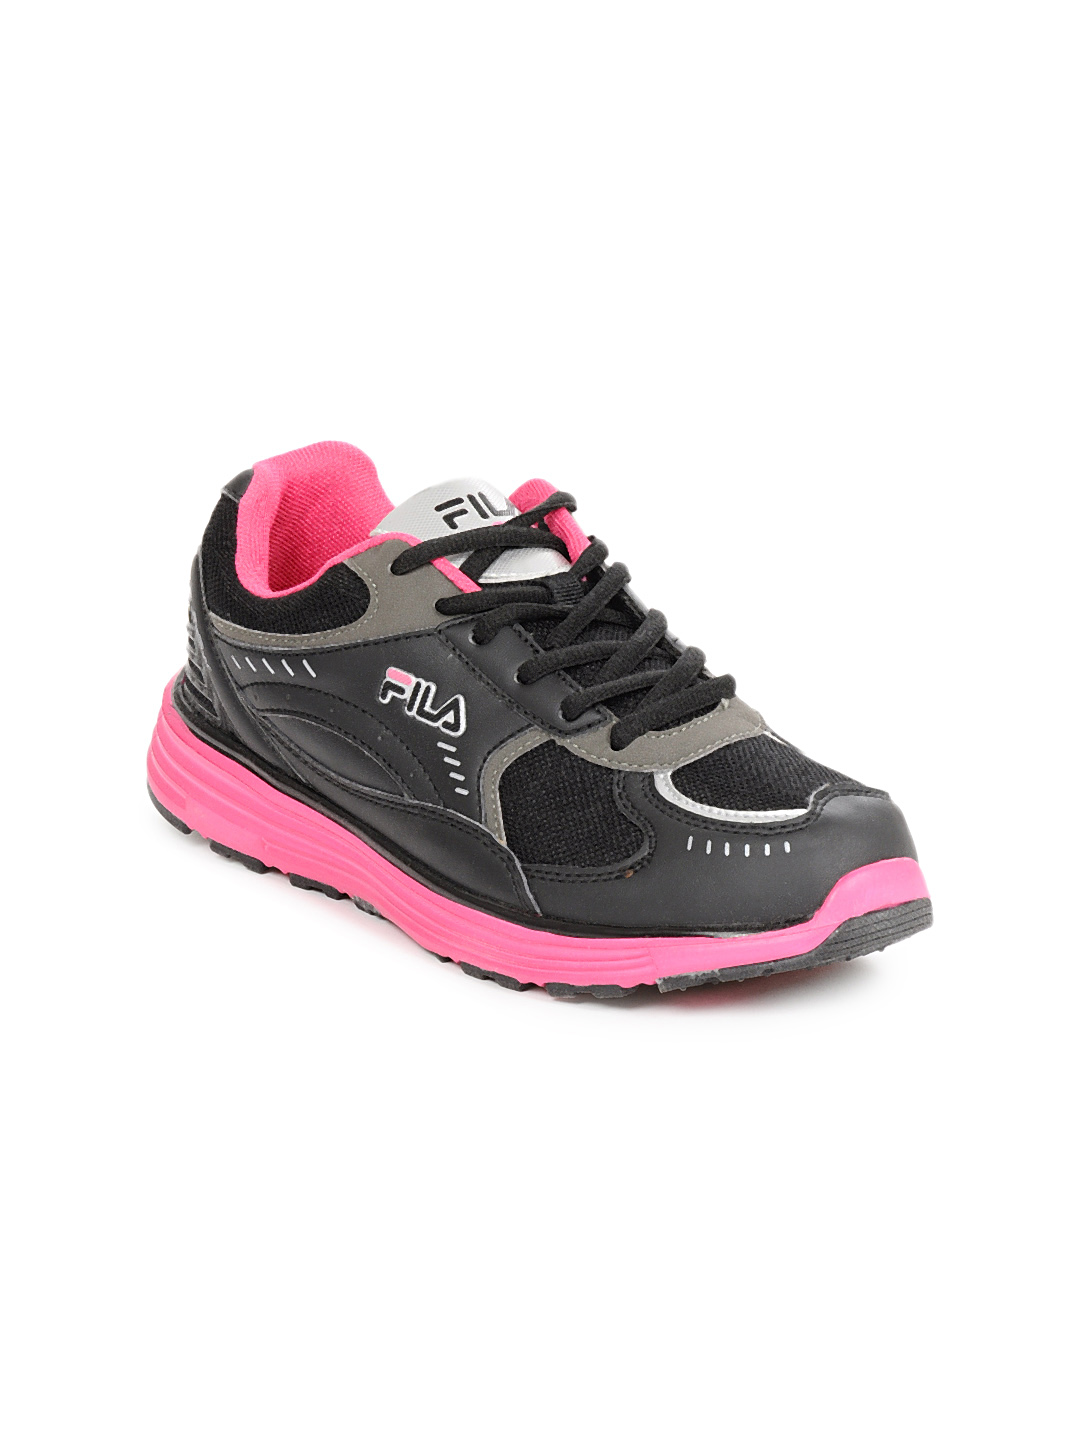 Nike Shoes Buy Nikes Shoes Online For Men Women amp Kids